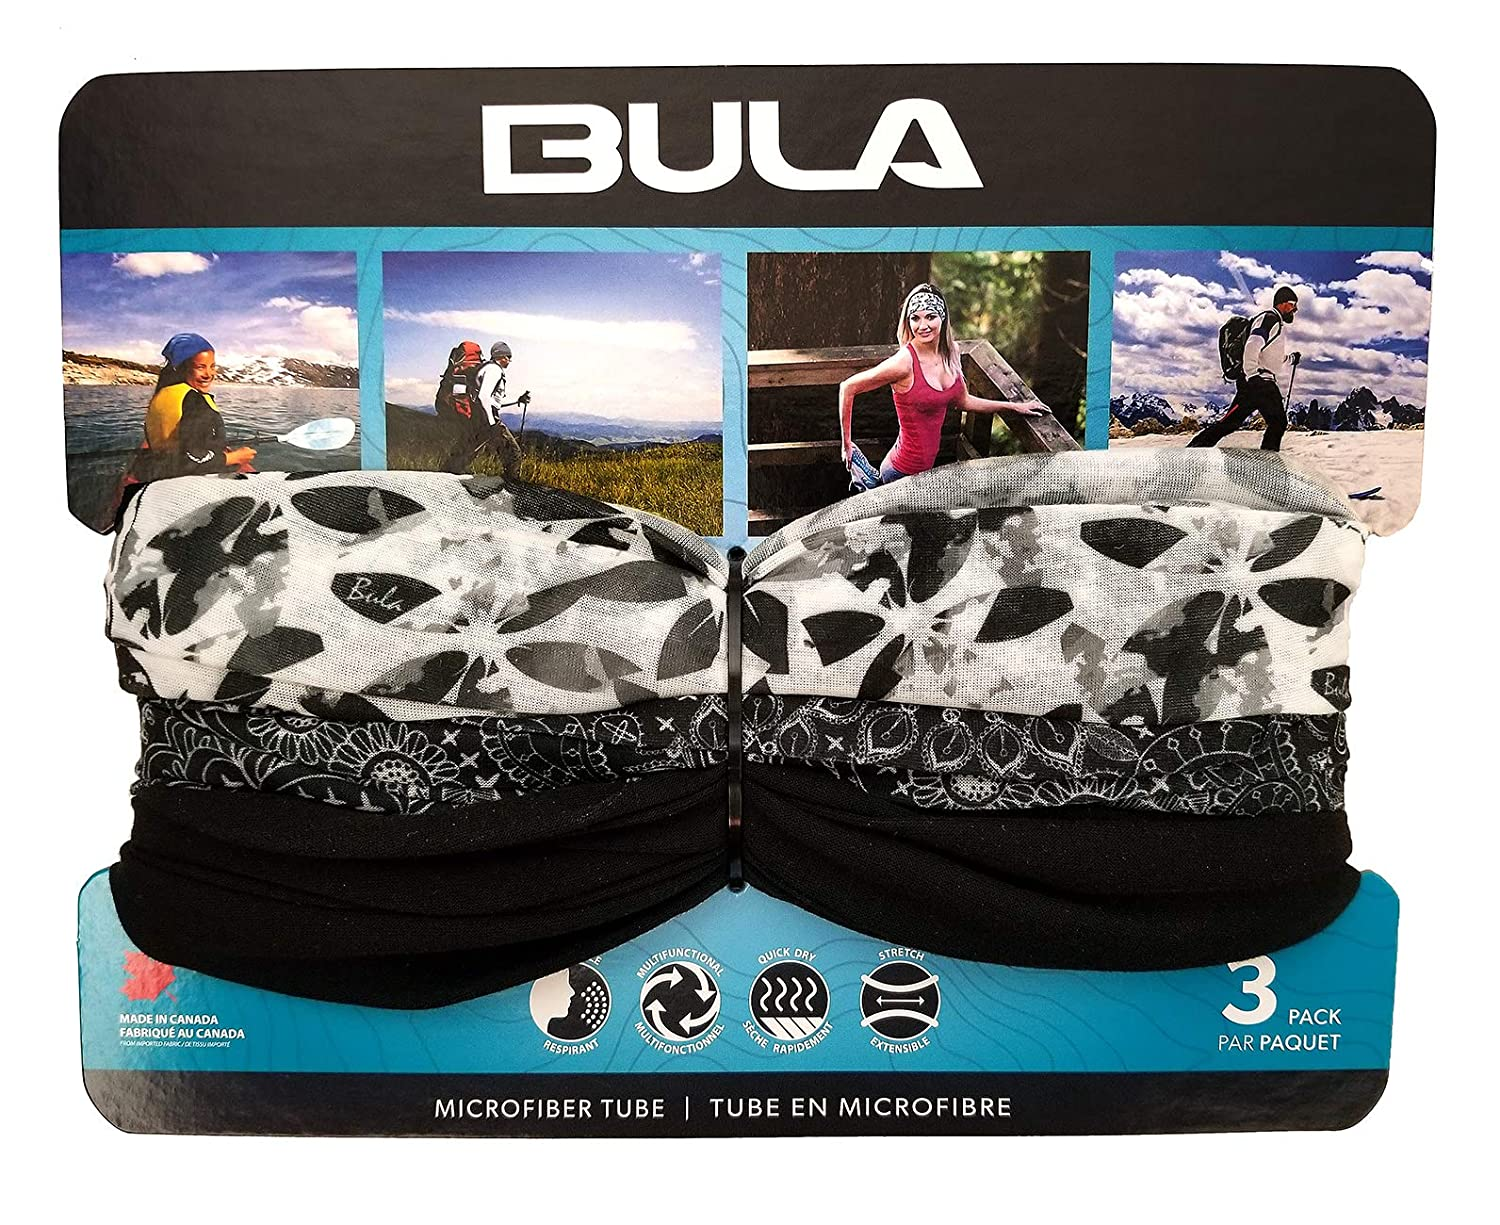 BULA - Unisex Soft Microfiber Multi-Functional Tube (3 Pack) (Black/White)